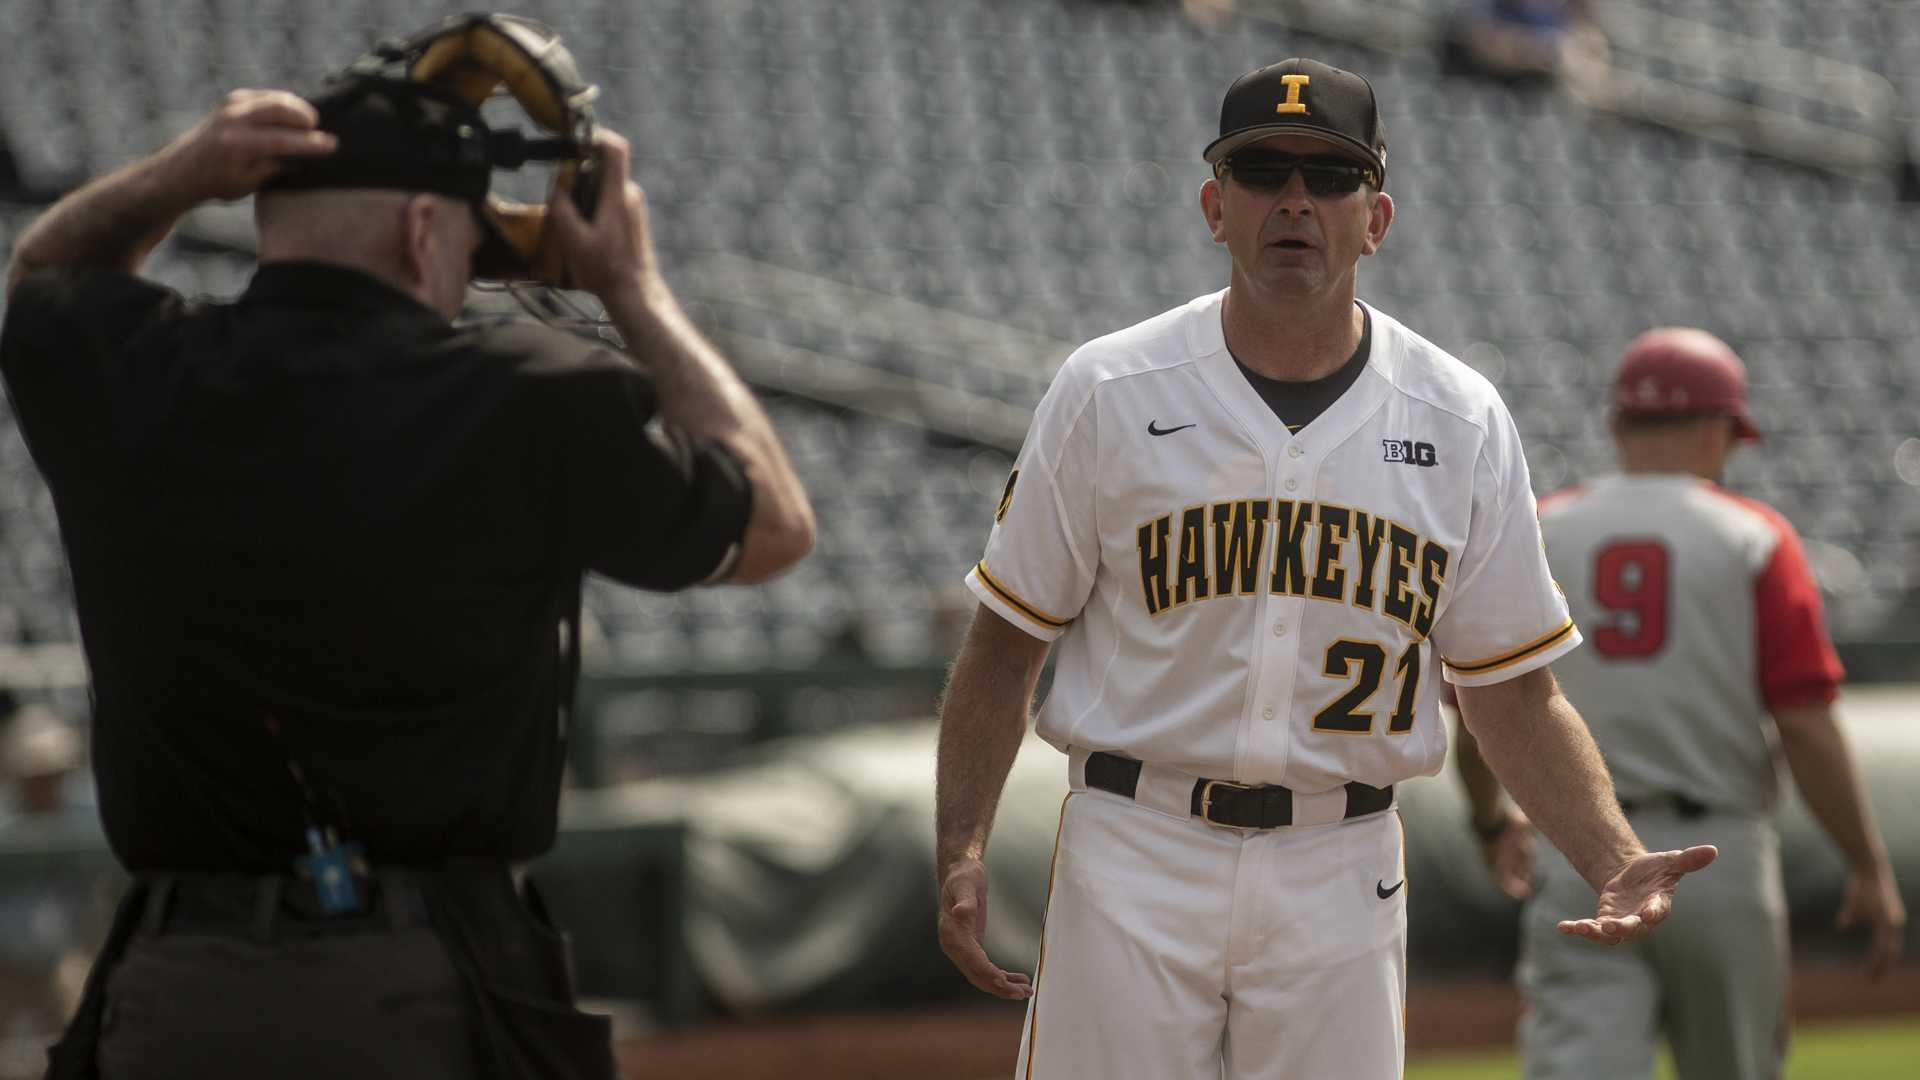 Iowa Head Coach Rick Heller questions the Home Plate Umpire during Iowa's Big Ten tournament game against Ohio State on Thursday, May 24, 2018. The Buckeyes defeated the Hawkeyes 2-0. (Nick Rohlman/The Daily Iowan)